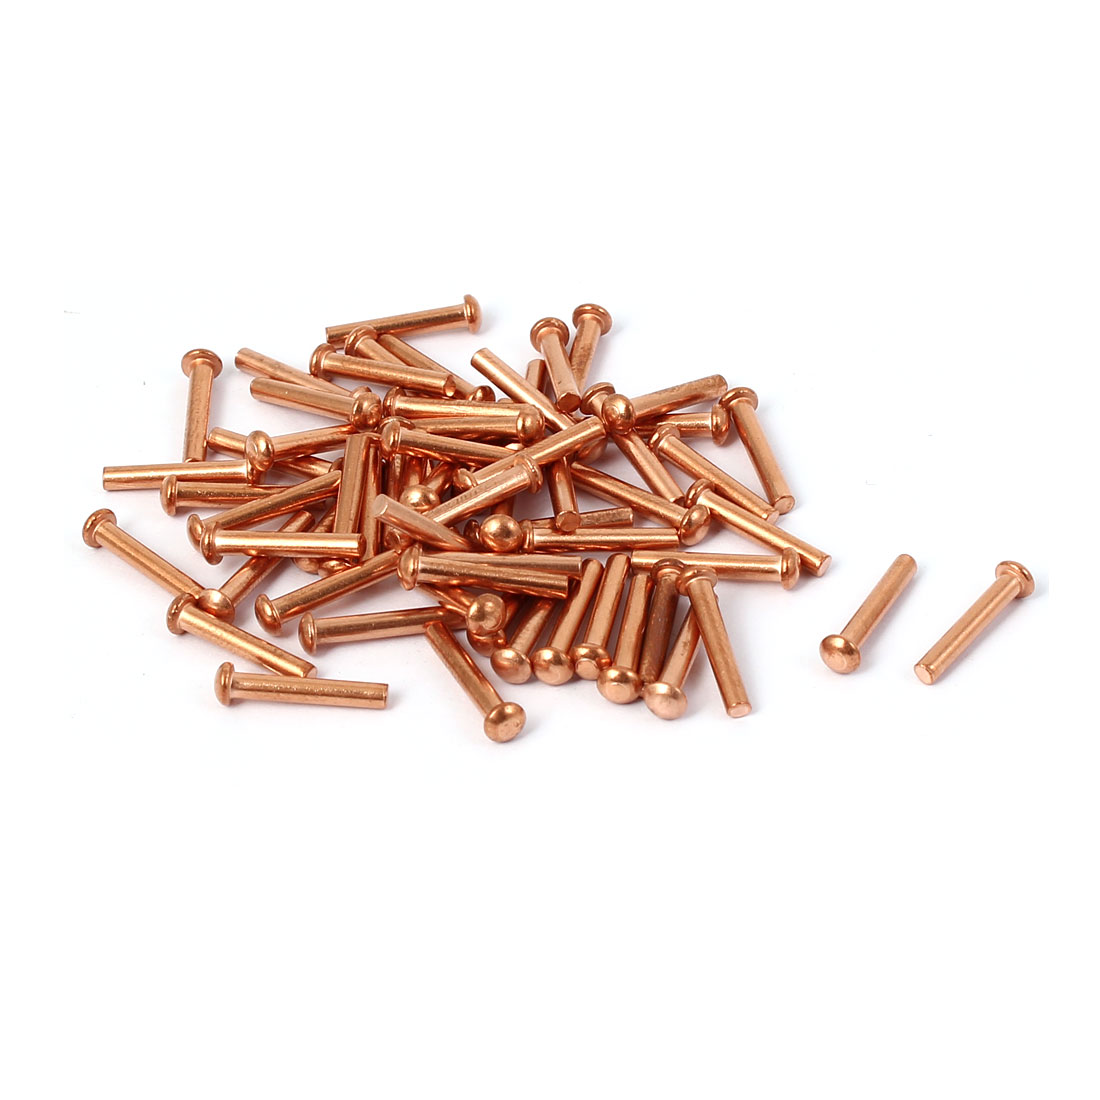 2mm x 12mm Round Head Copper Solid Rivets Fasteners Gold Tone 13mm Length 40 Pcs